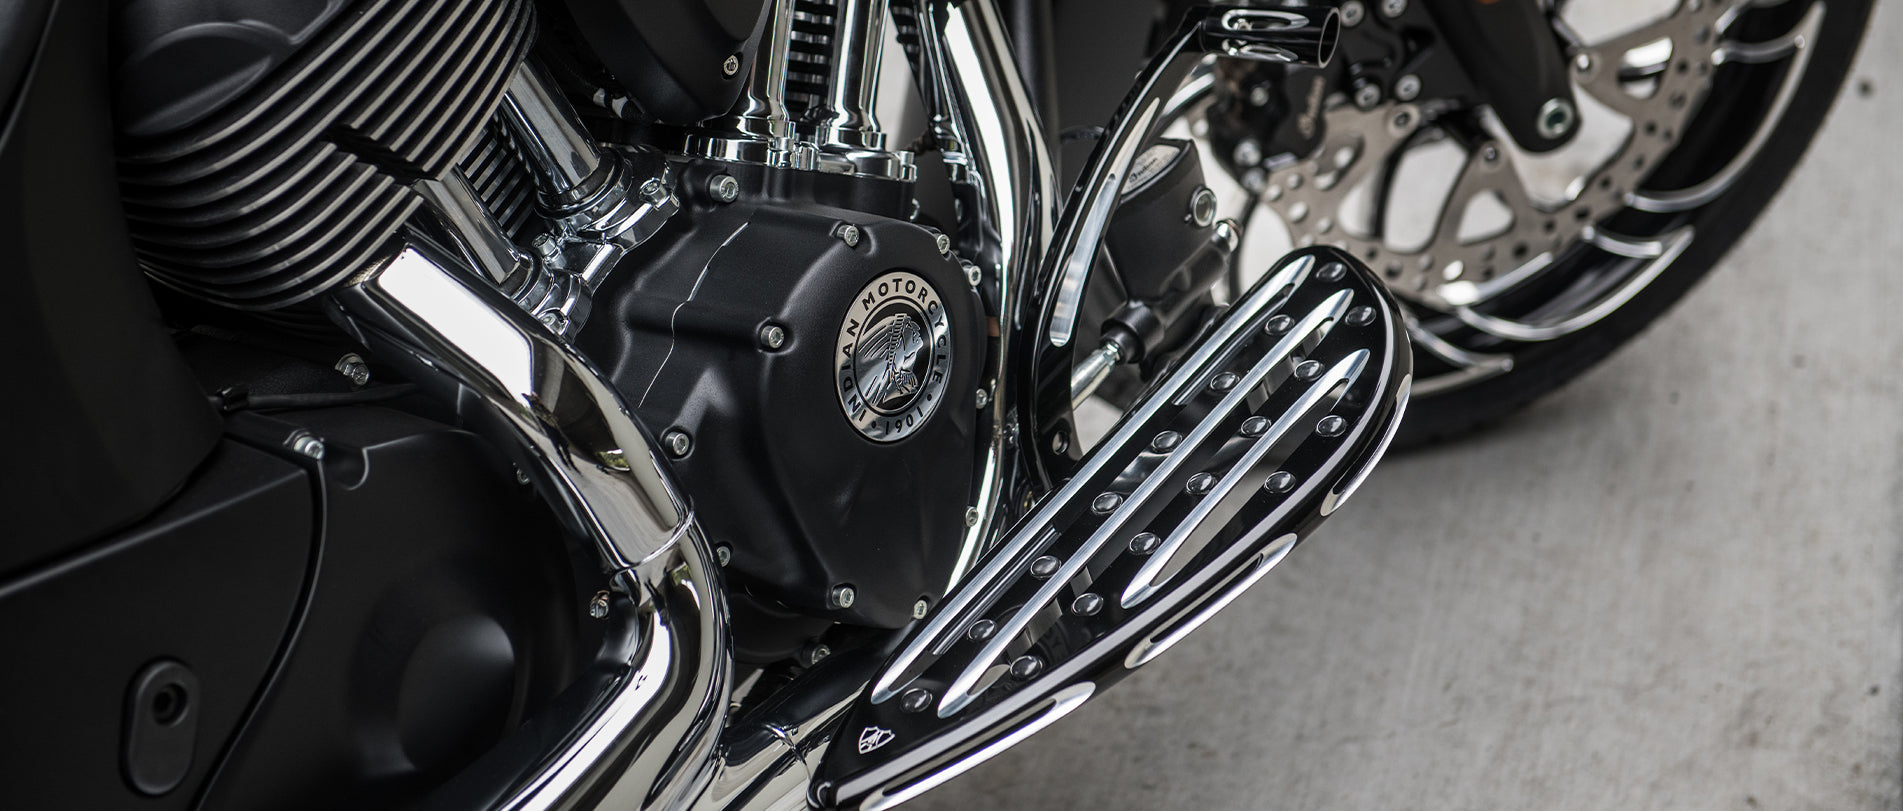 Footpegs & Foot Controls For Indian Motorcycle®